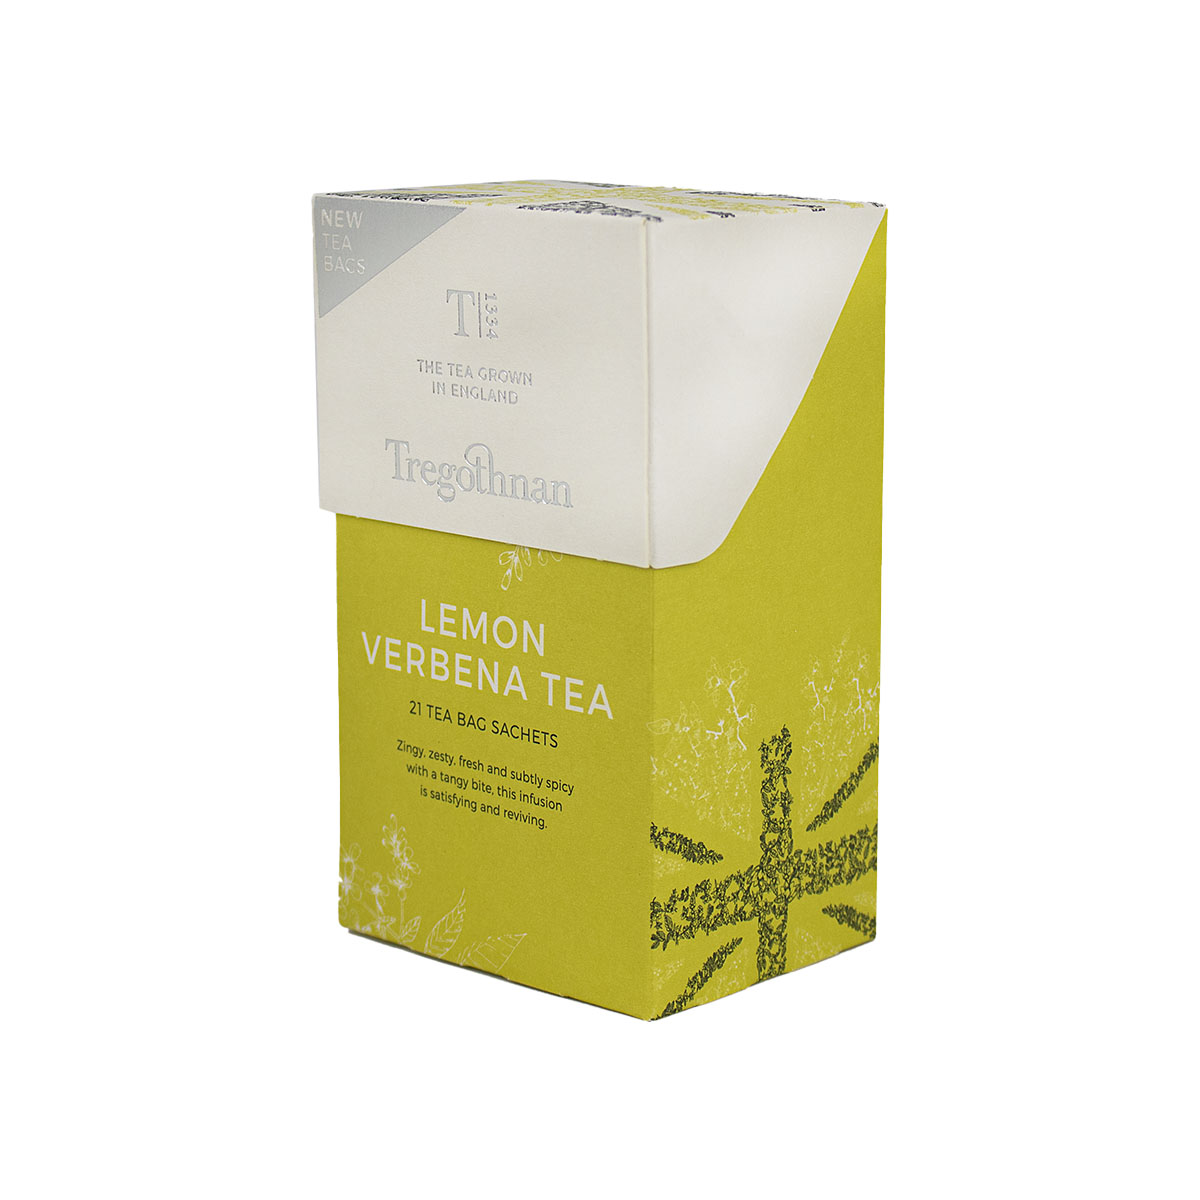 Tregothnan Lemon Verbena Tea 21 Sachet Box Buy Online At Provenance Hub